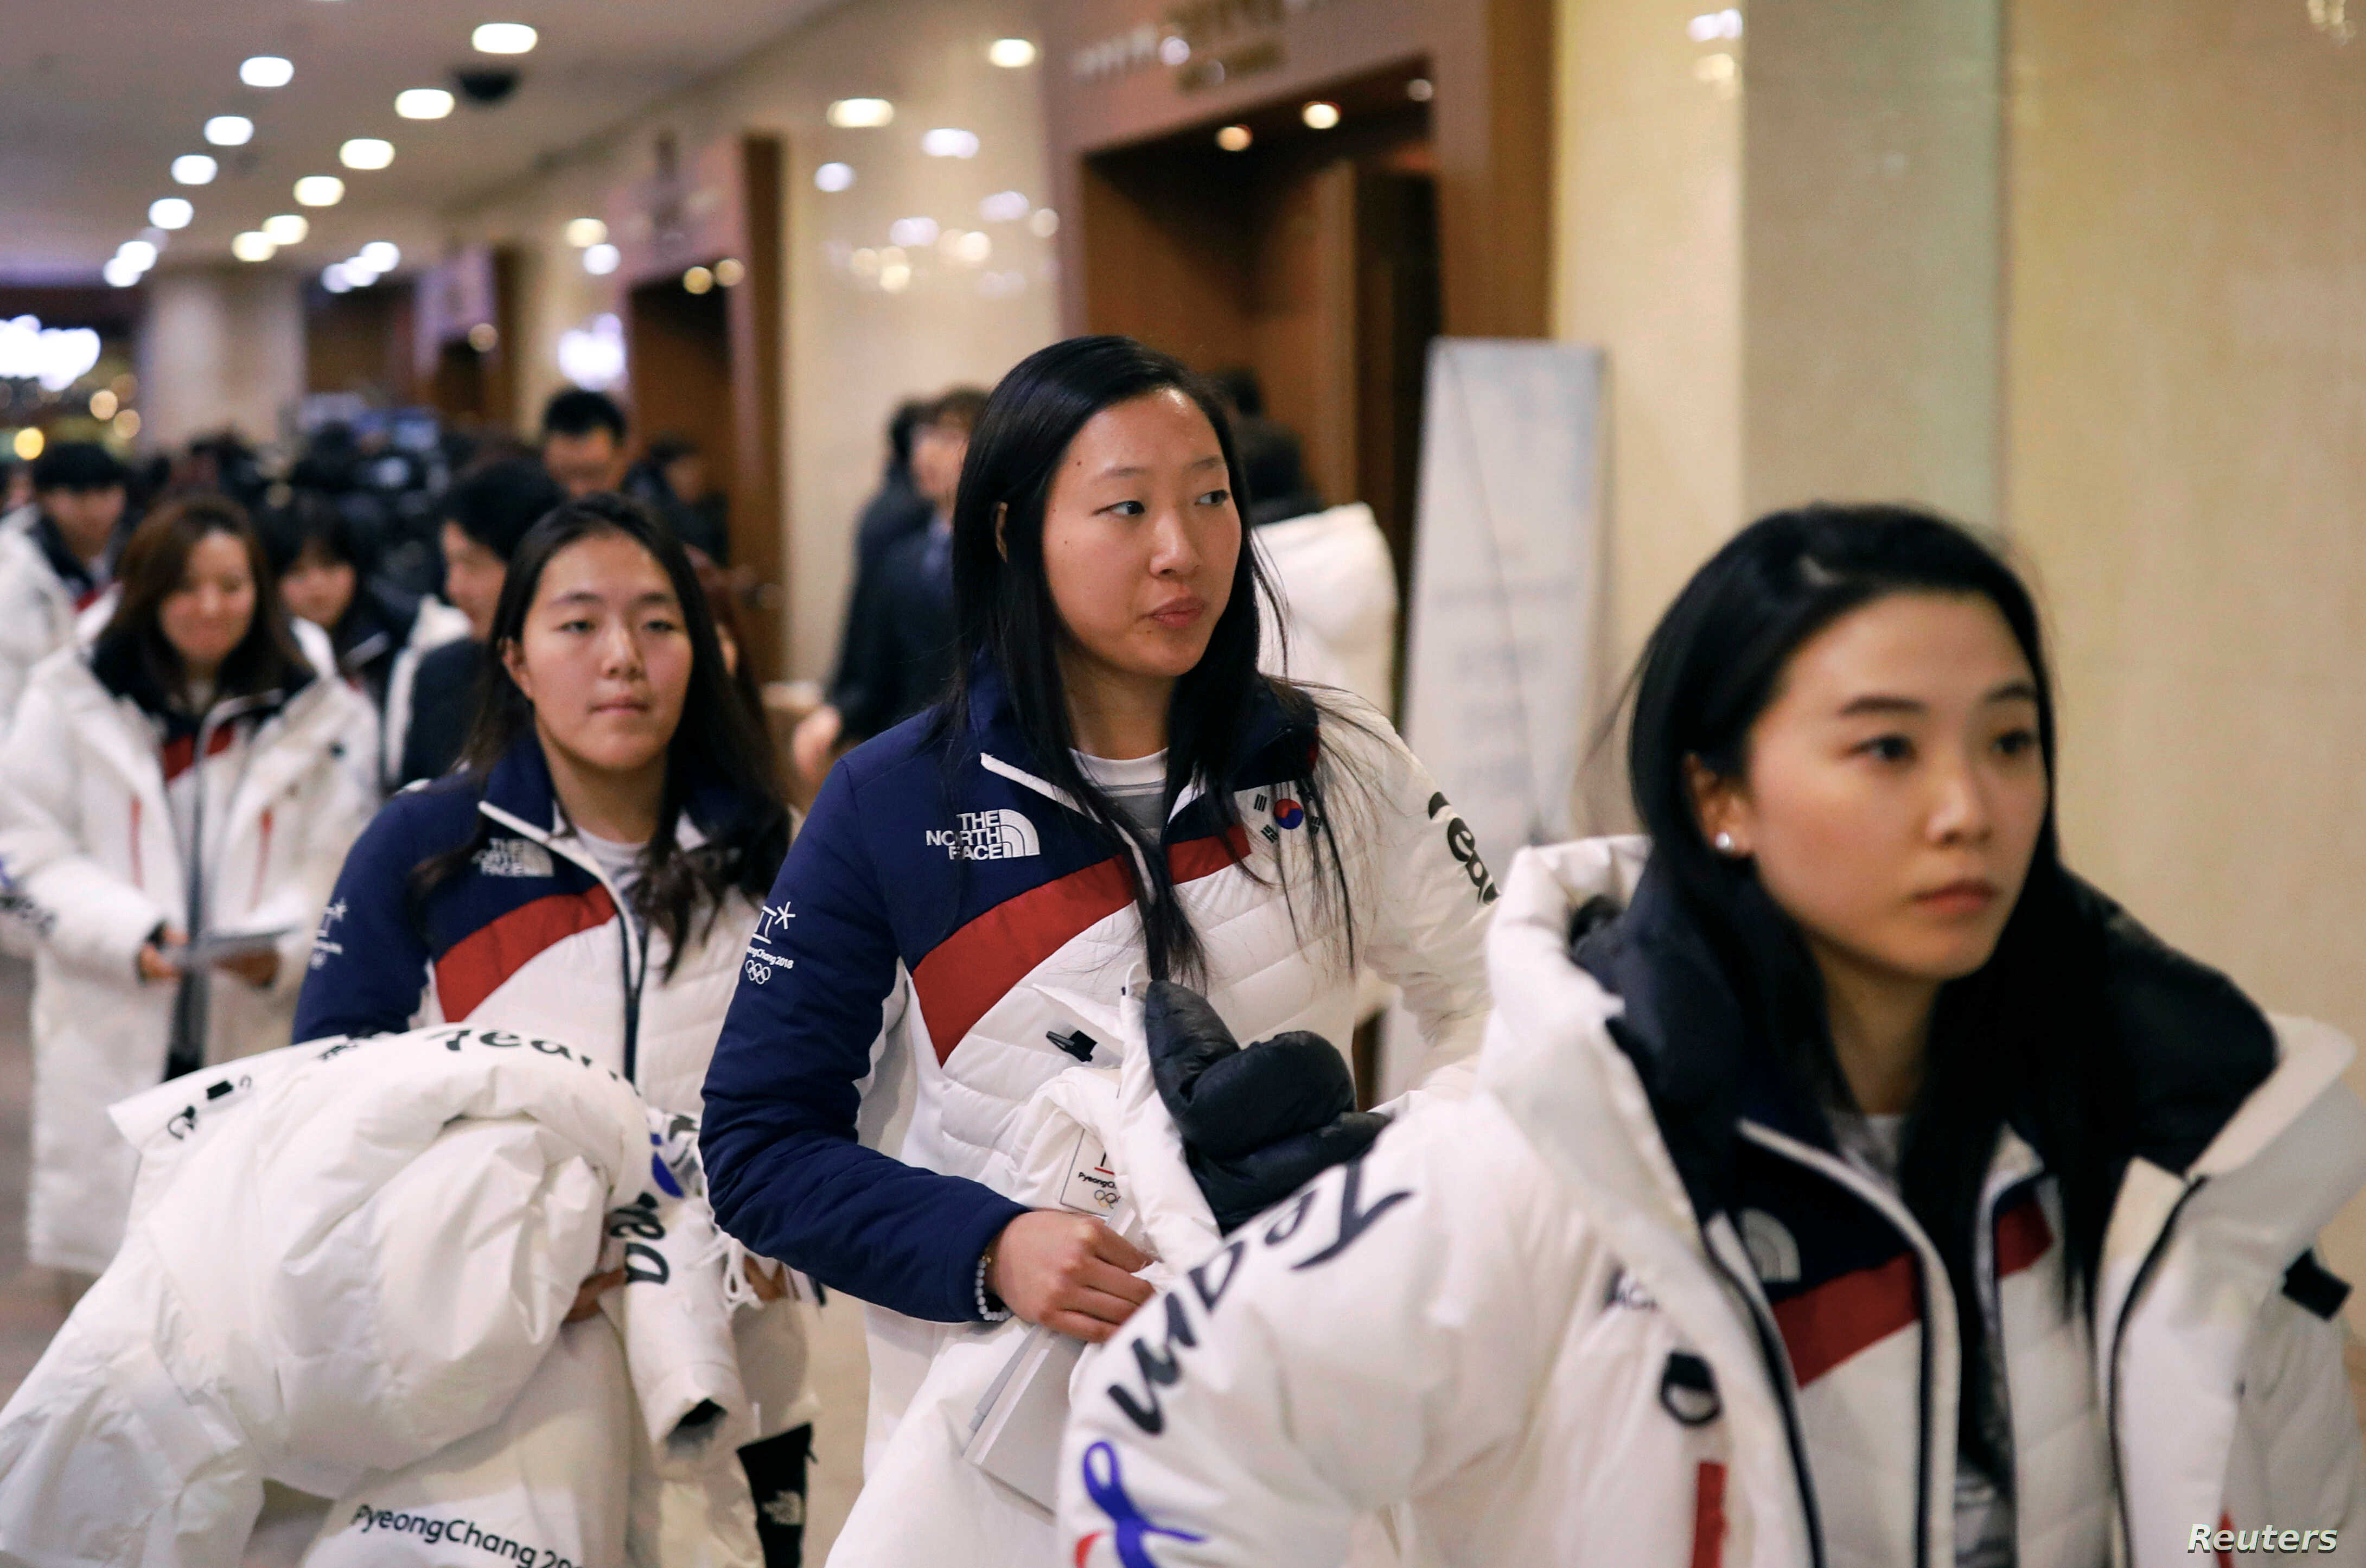 Korean Hockey Players Arrive for Joint Olympics Practice